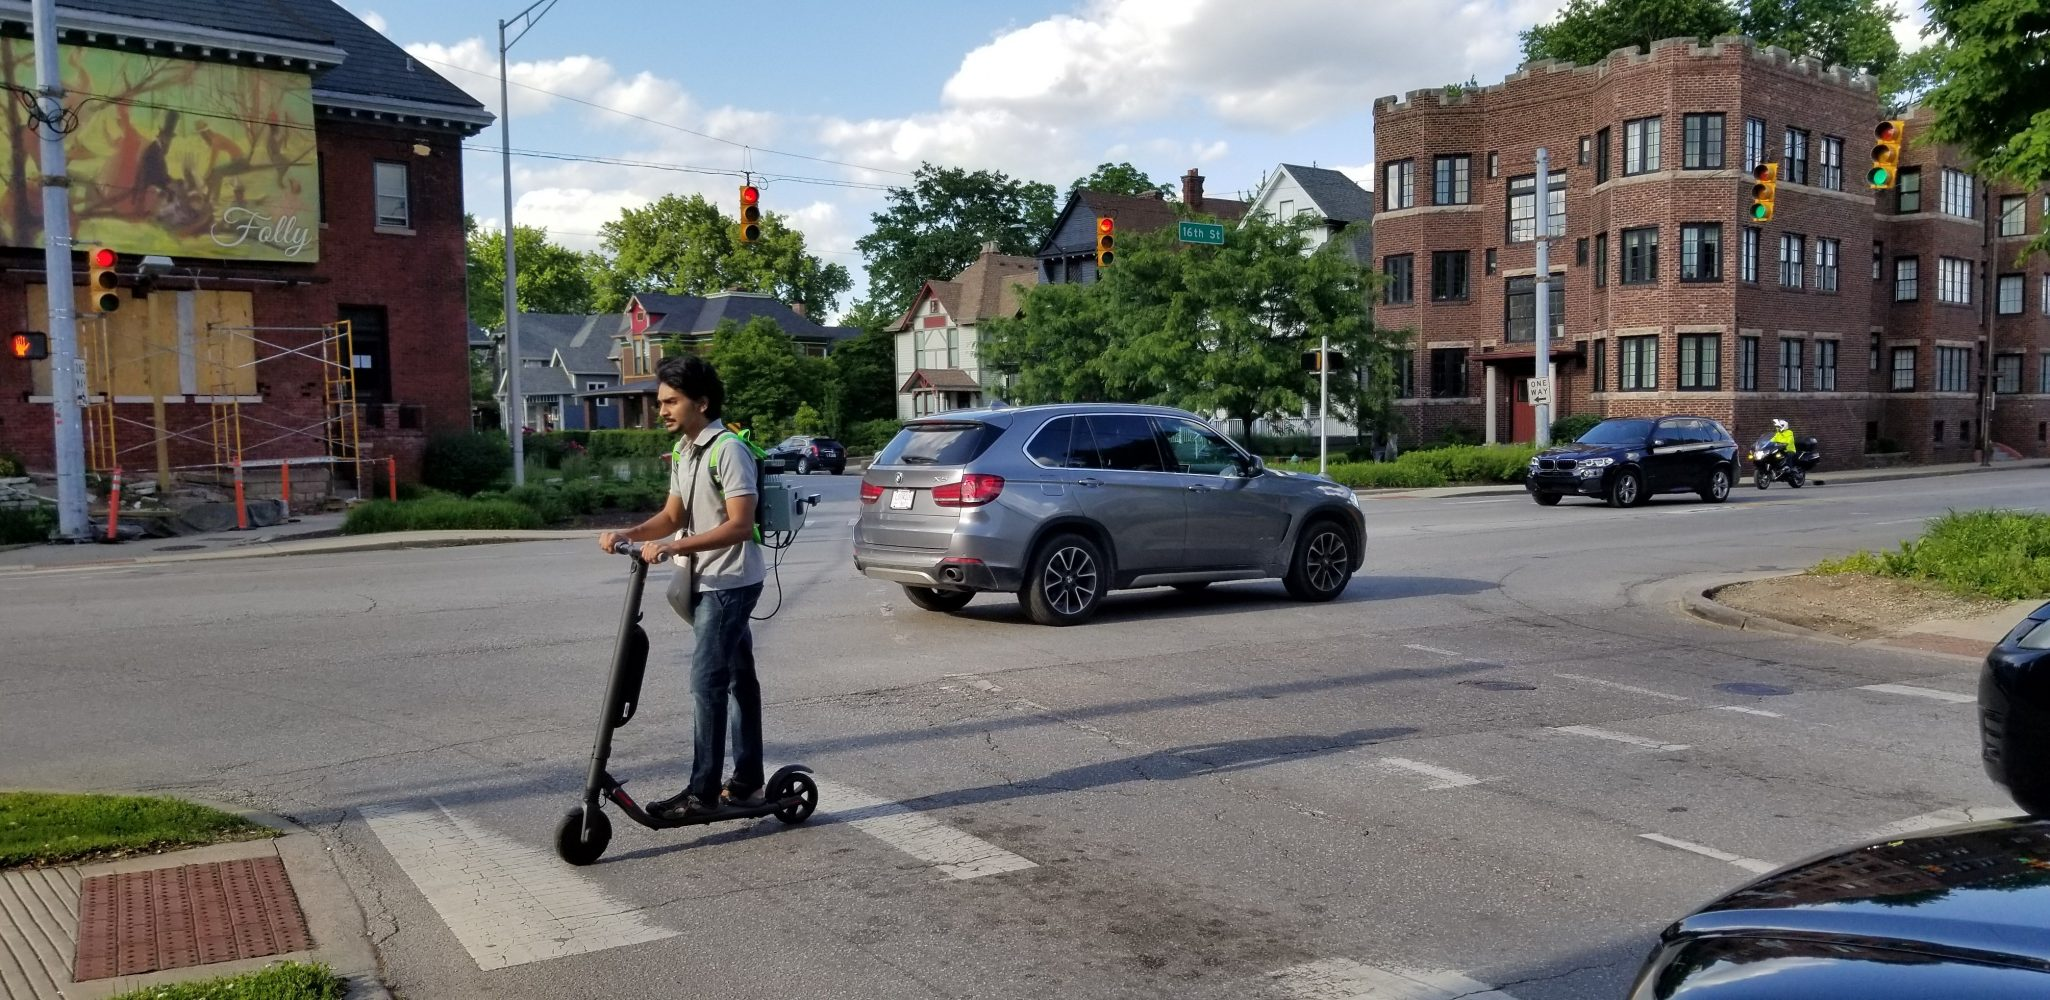 e-Scooters: A Roadmap to Vehicle Safety